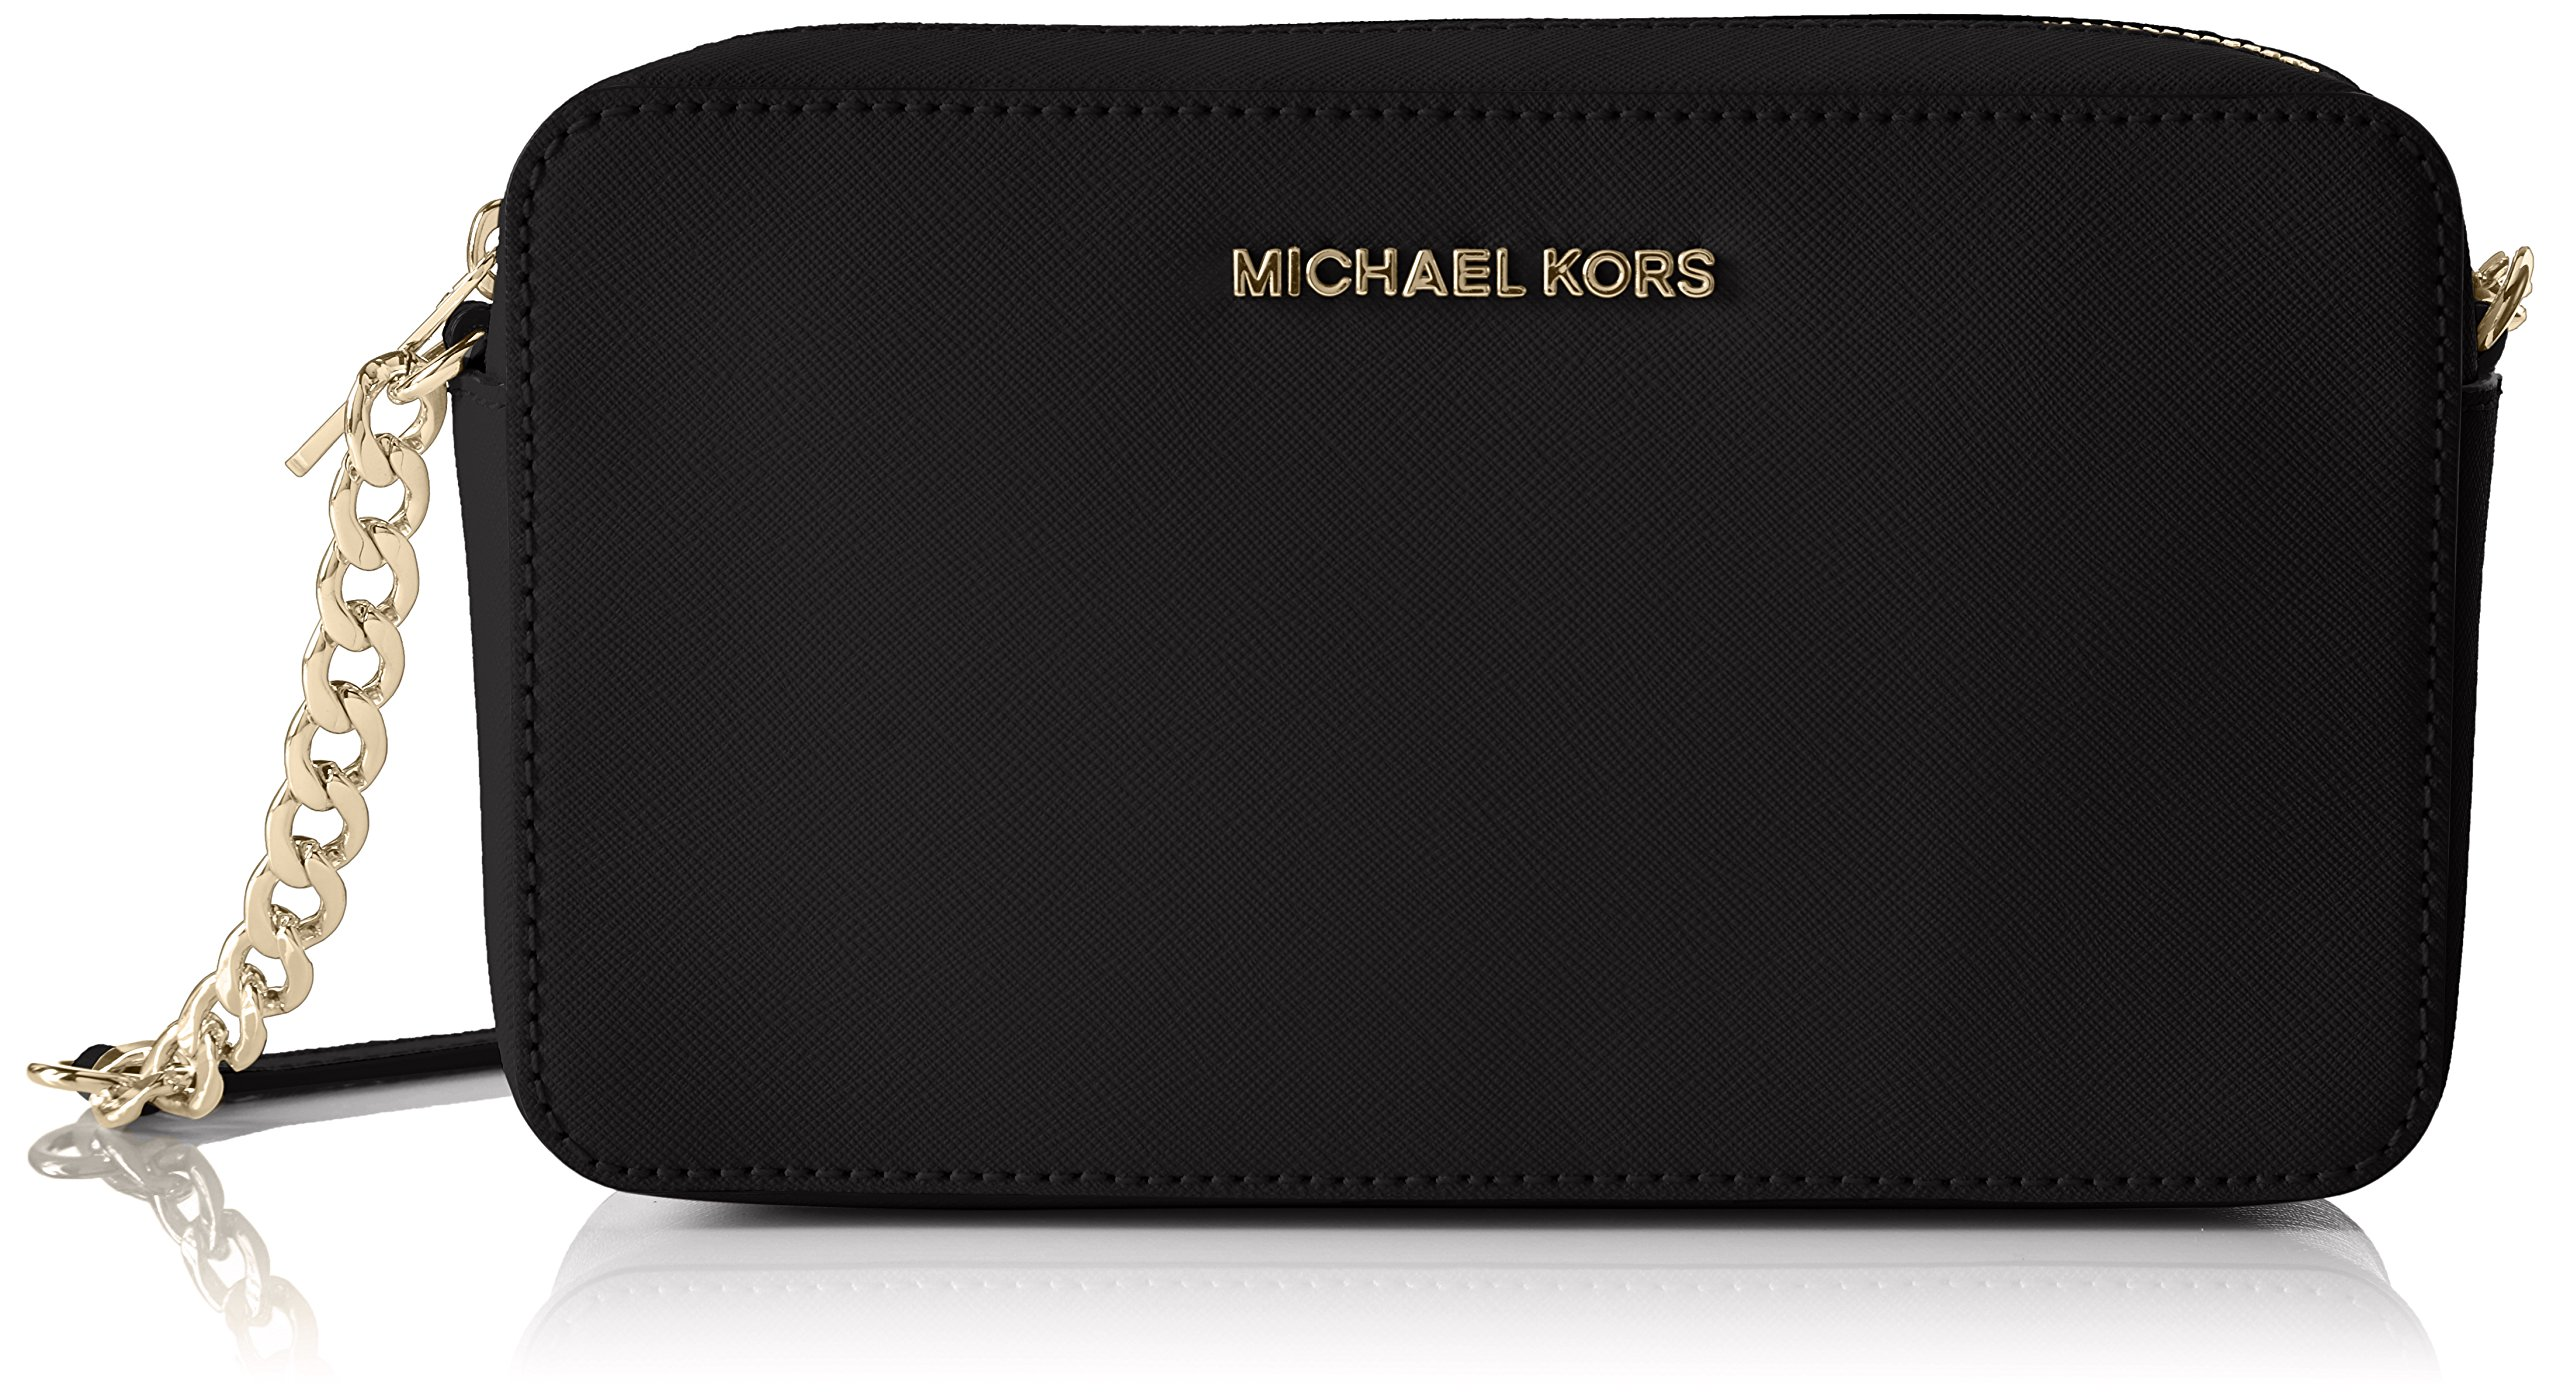 MICHAEL Michael Kors Women's Medium Jet Set Cross Body Bag, Black, One Size